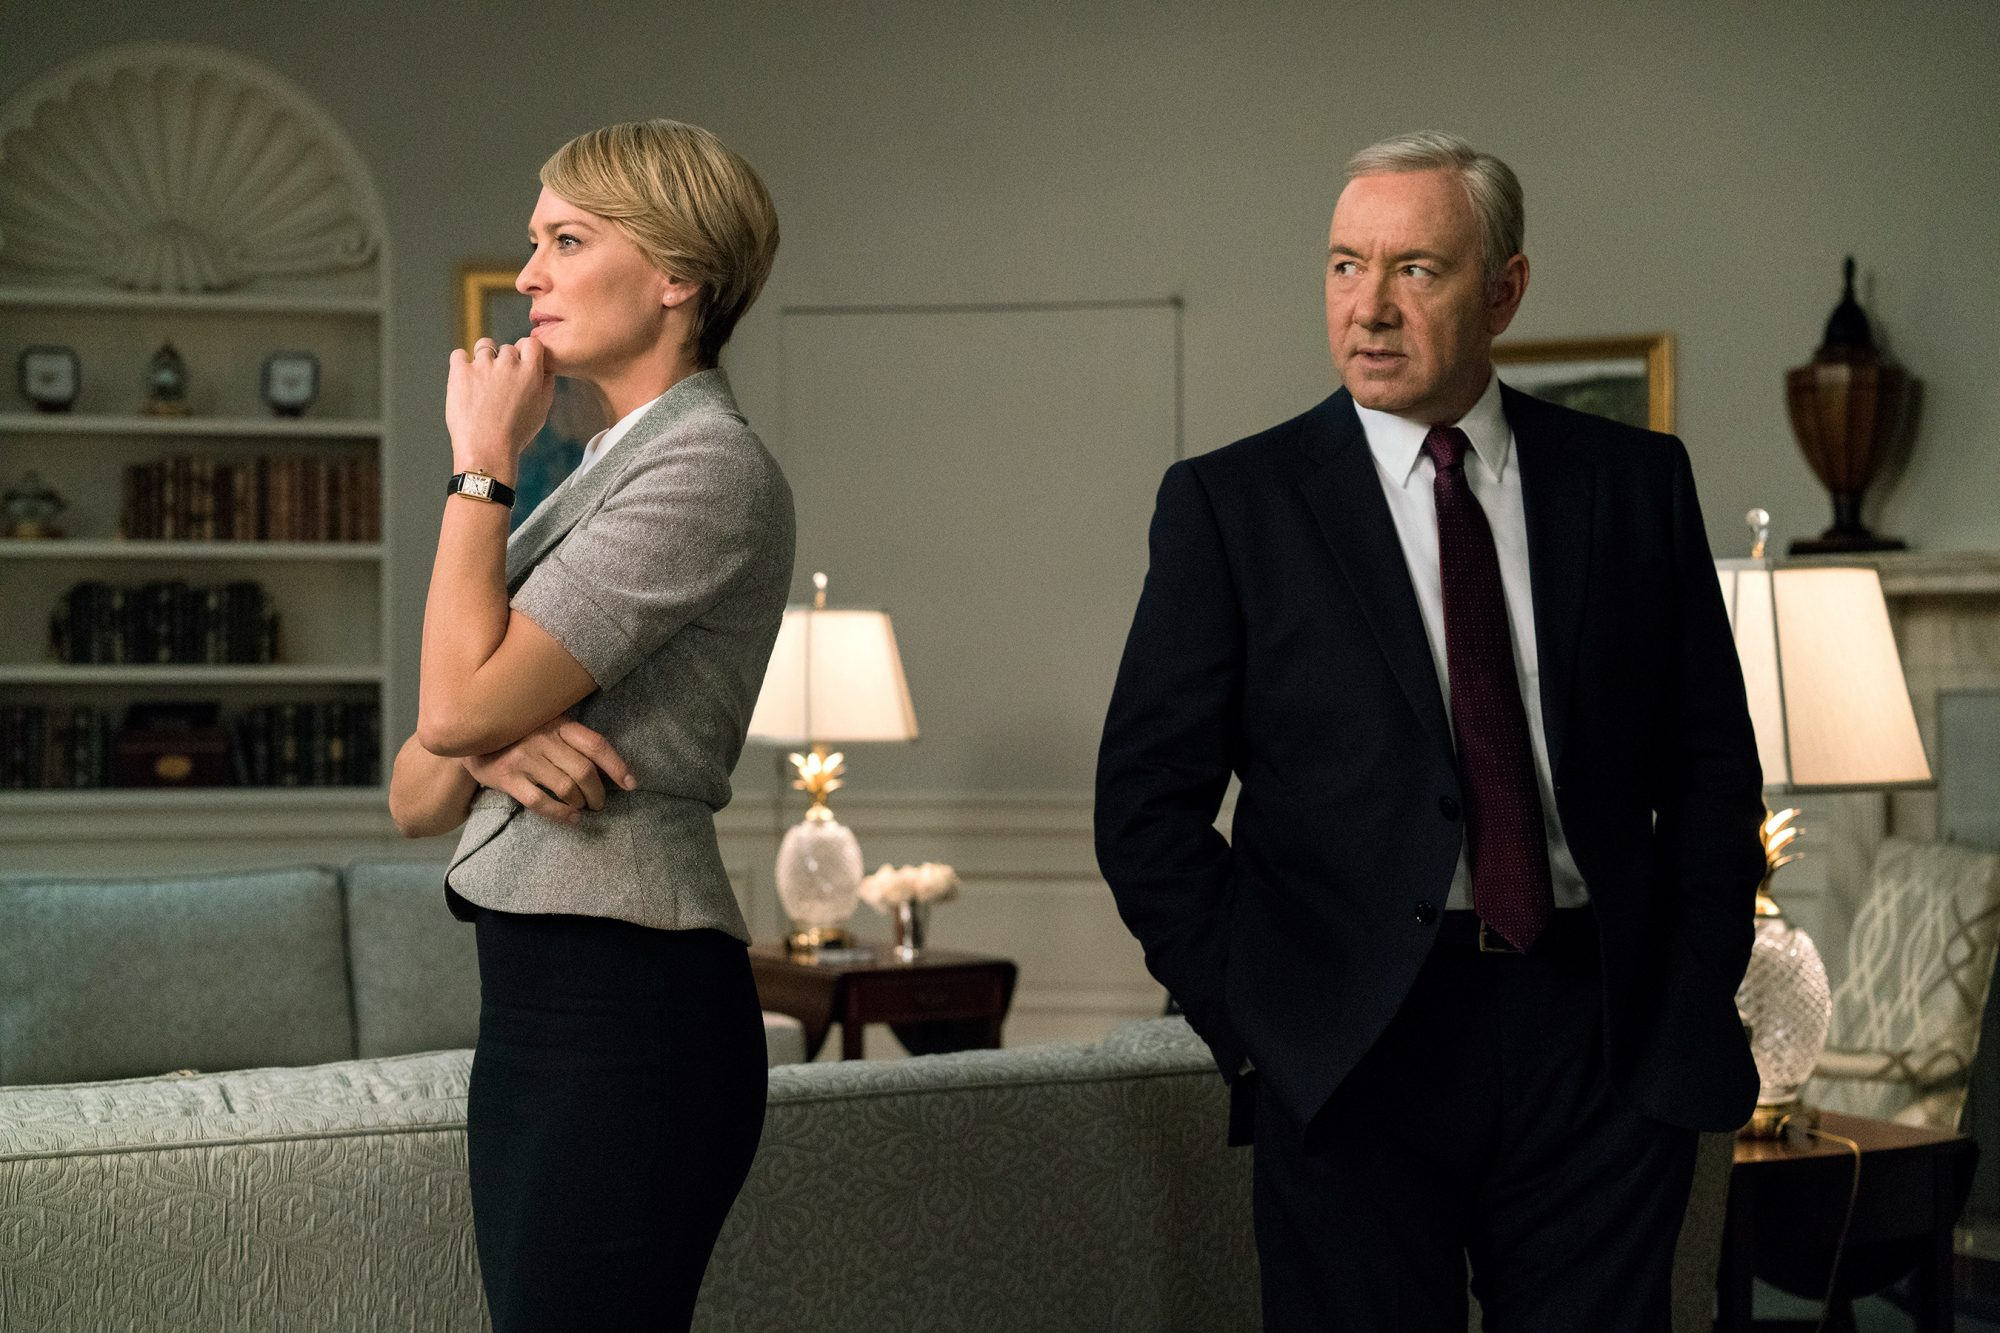 HOUSE OF CARDSRobin Wright and Kevin Spacey